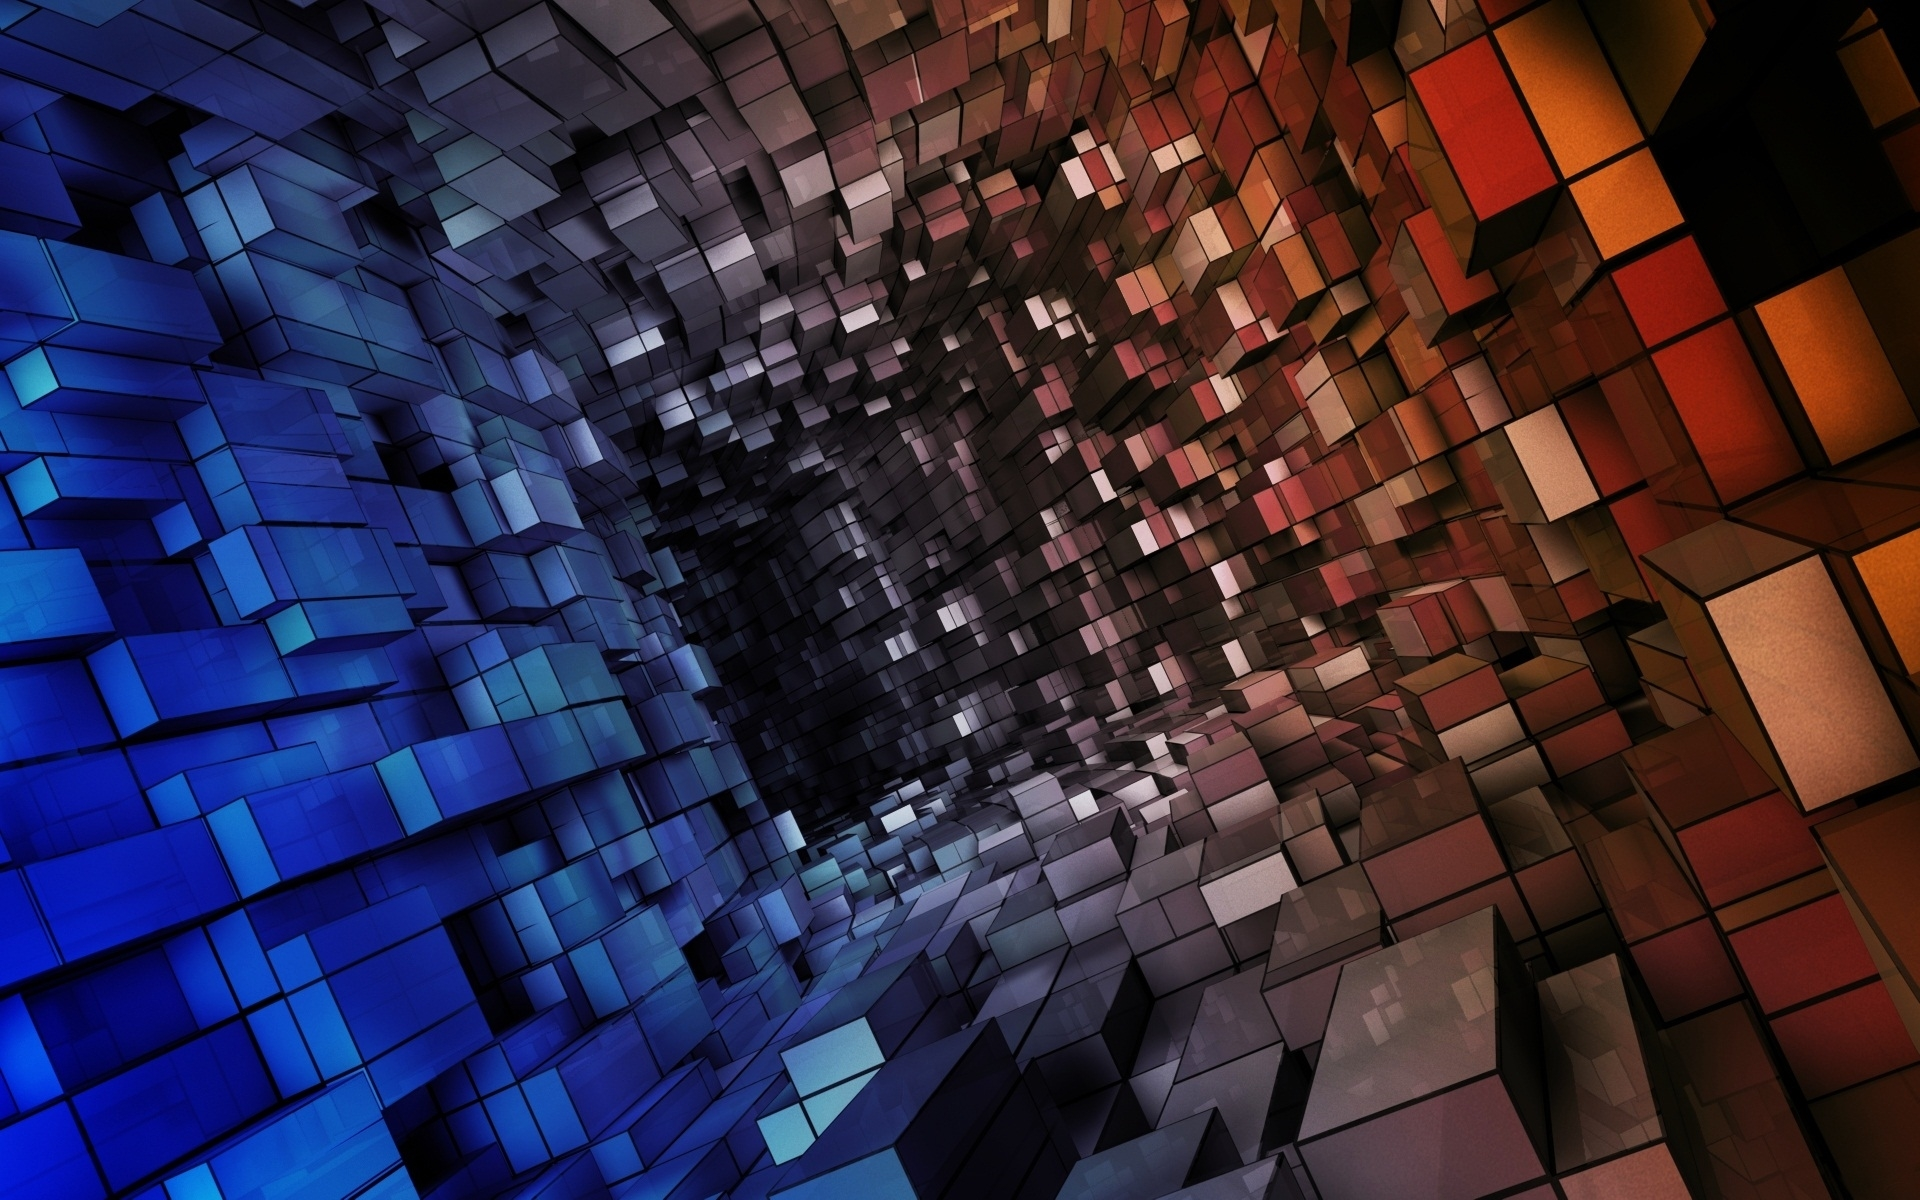 abstract 3d wallpaper 1920x1080 - photo #38